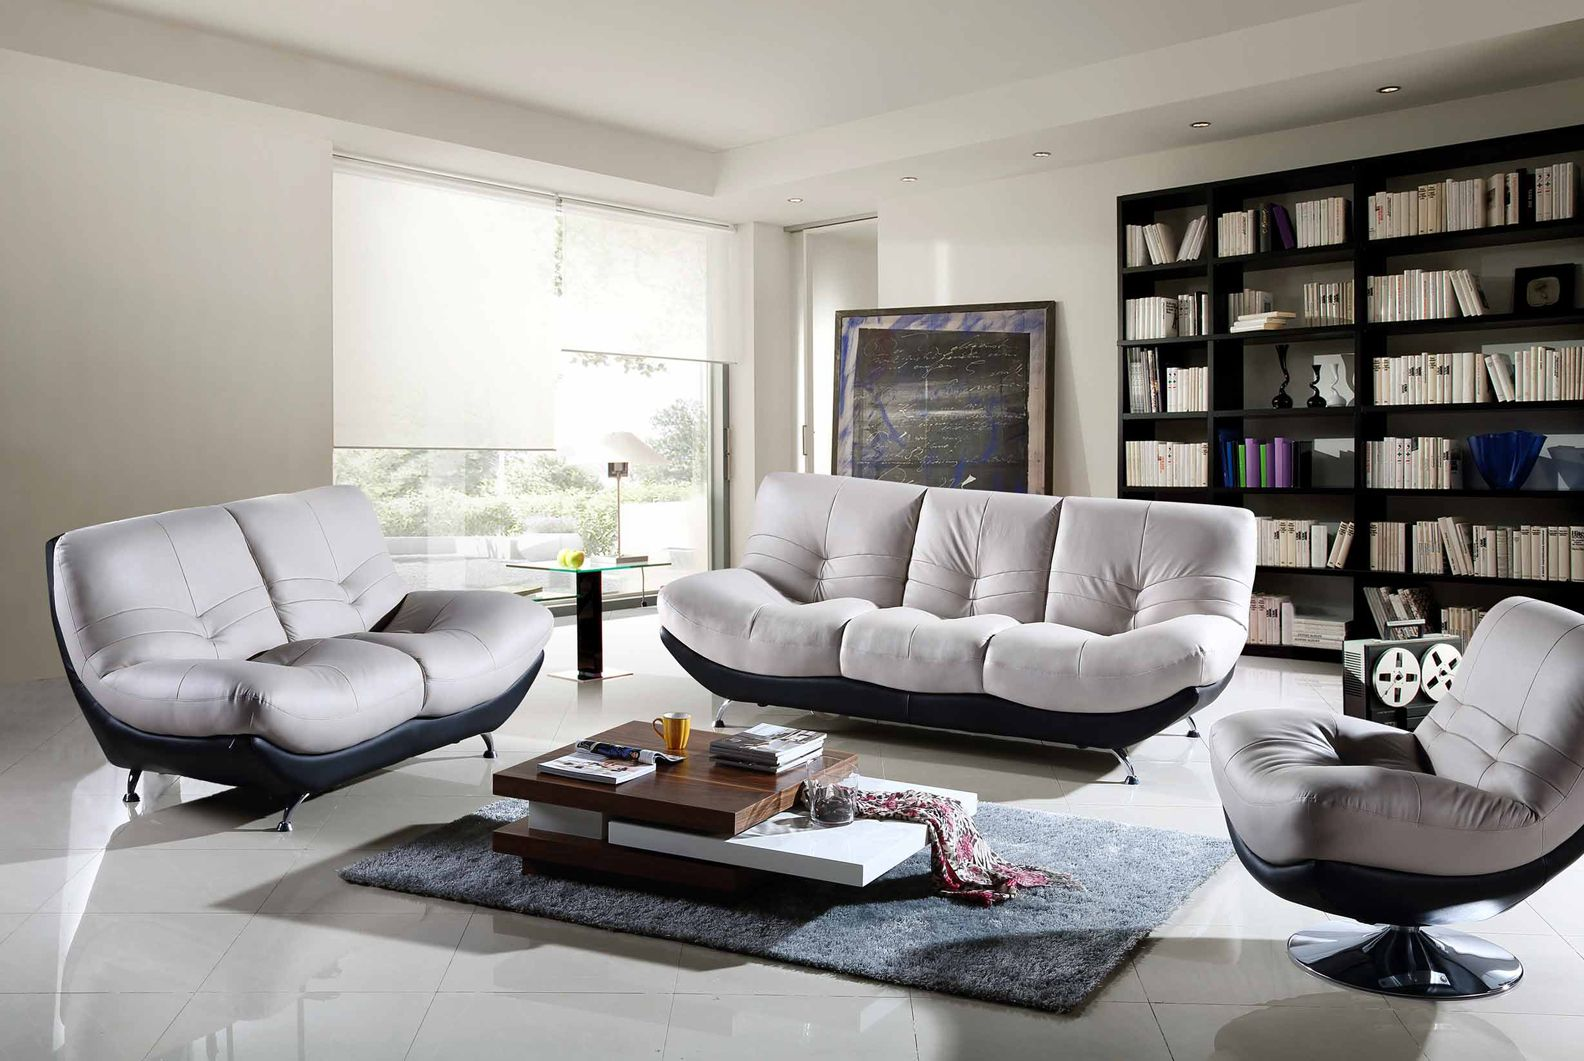 modern sofa bed ideas by tomaru sleeper sofas - Interior Design ...